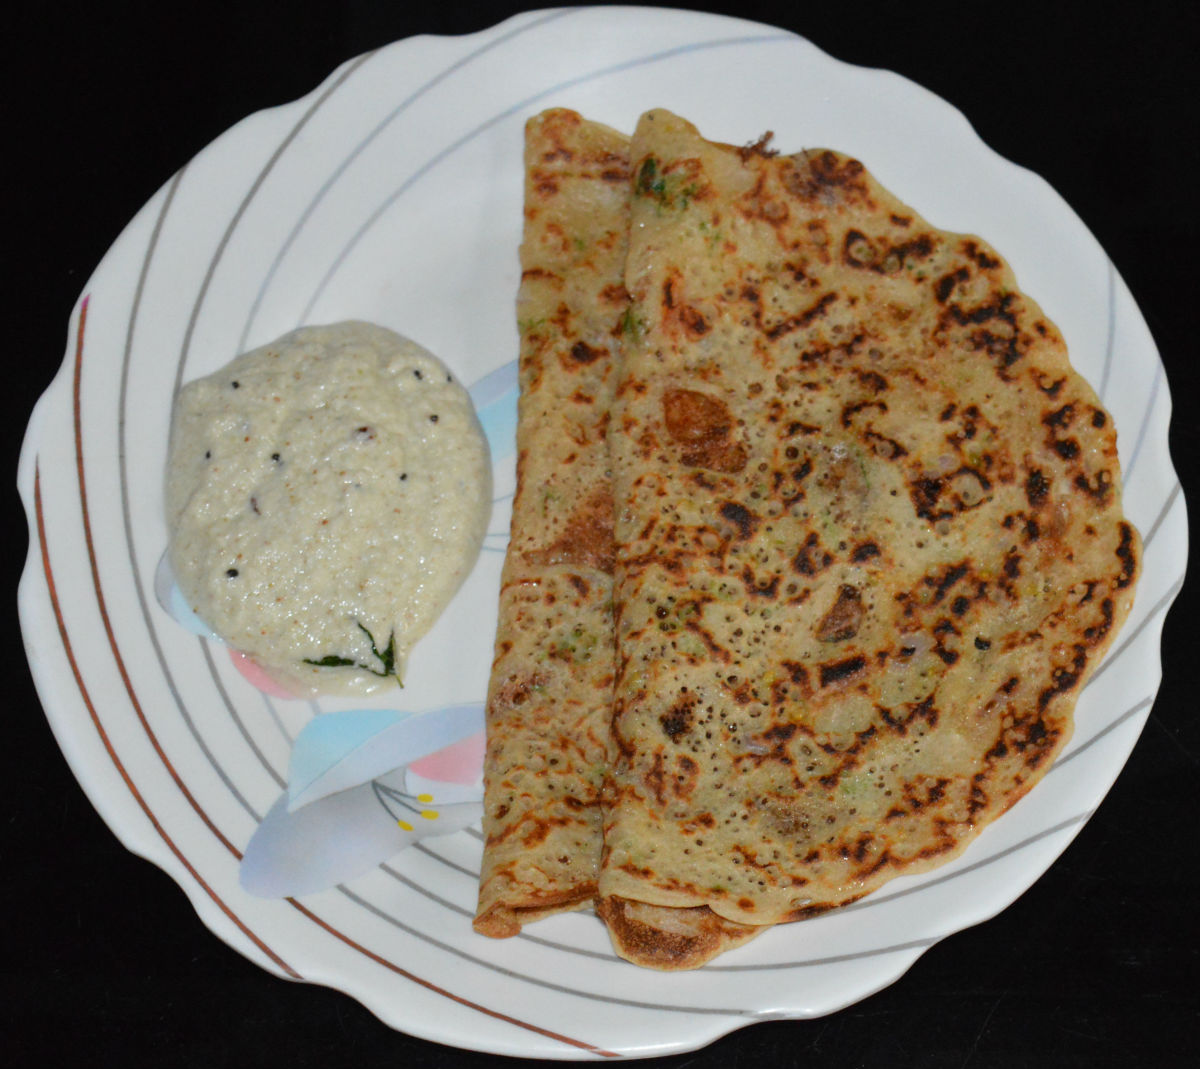 Spicy Wheat Flour Pancake Recipe (Instant Wheat Flour Pancakes)